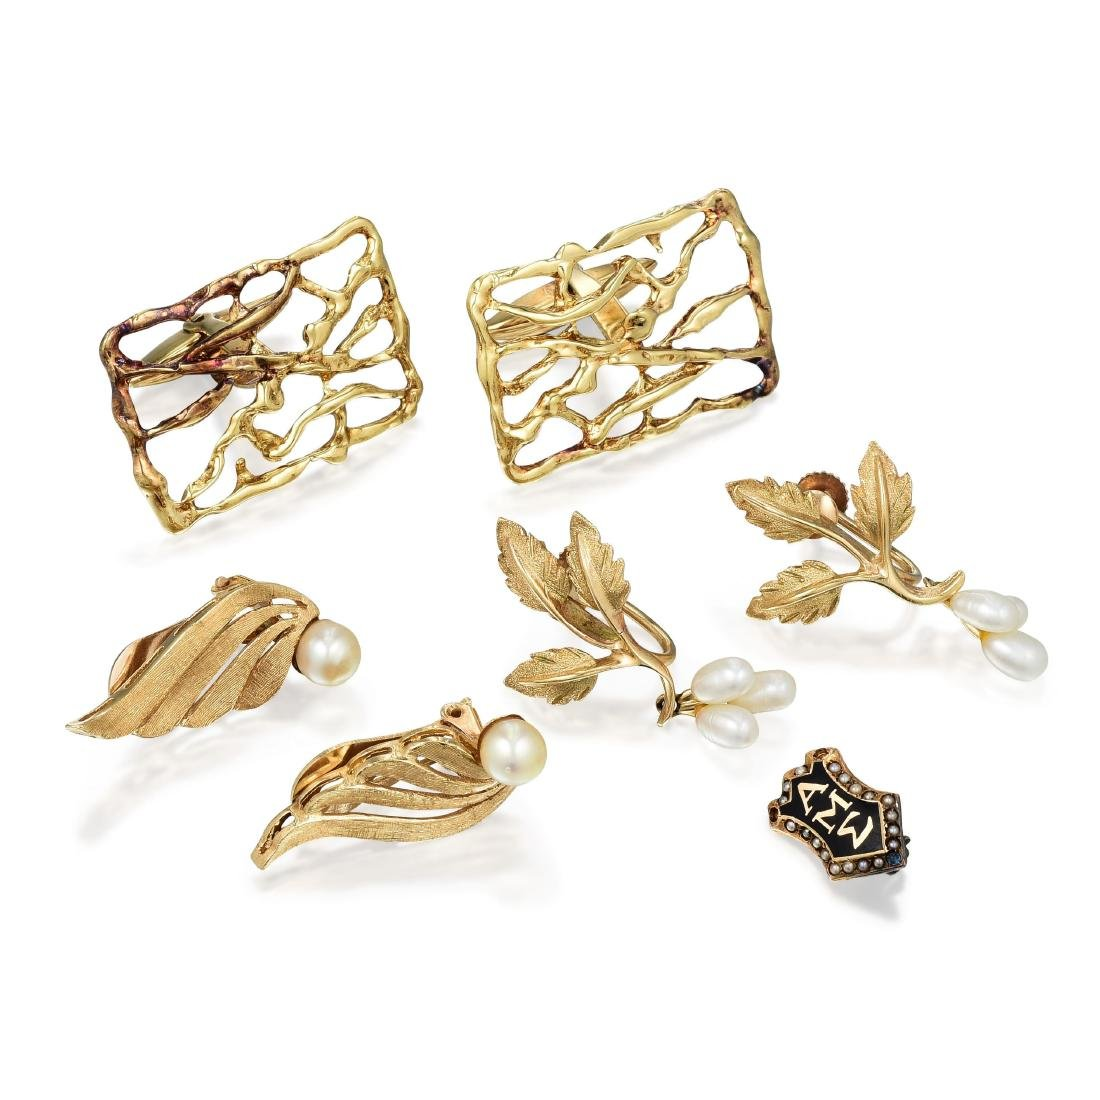 A Group of 14K Gold Jewelry